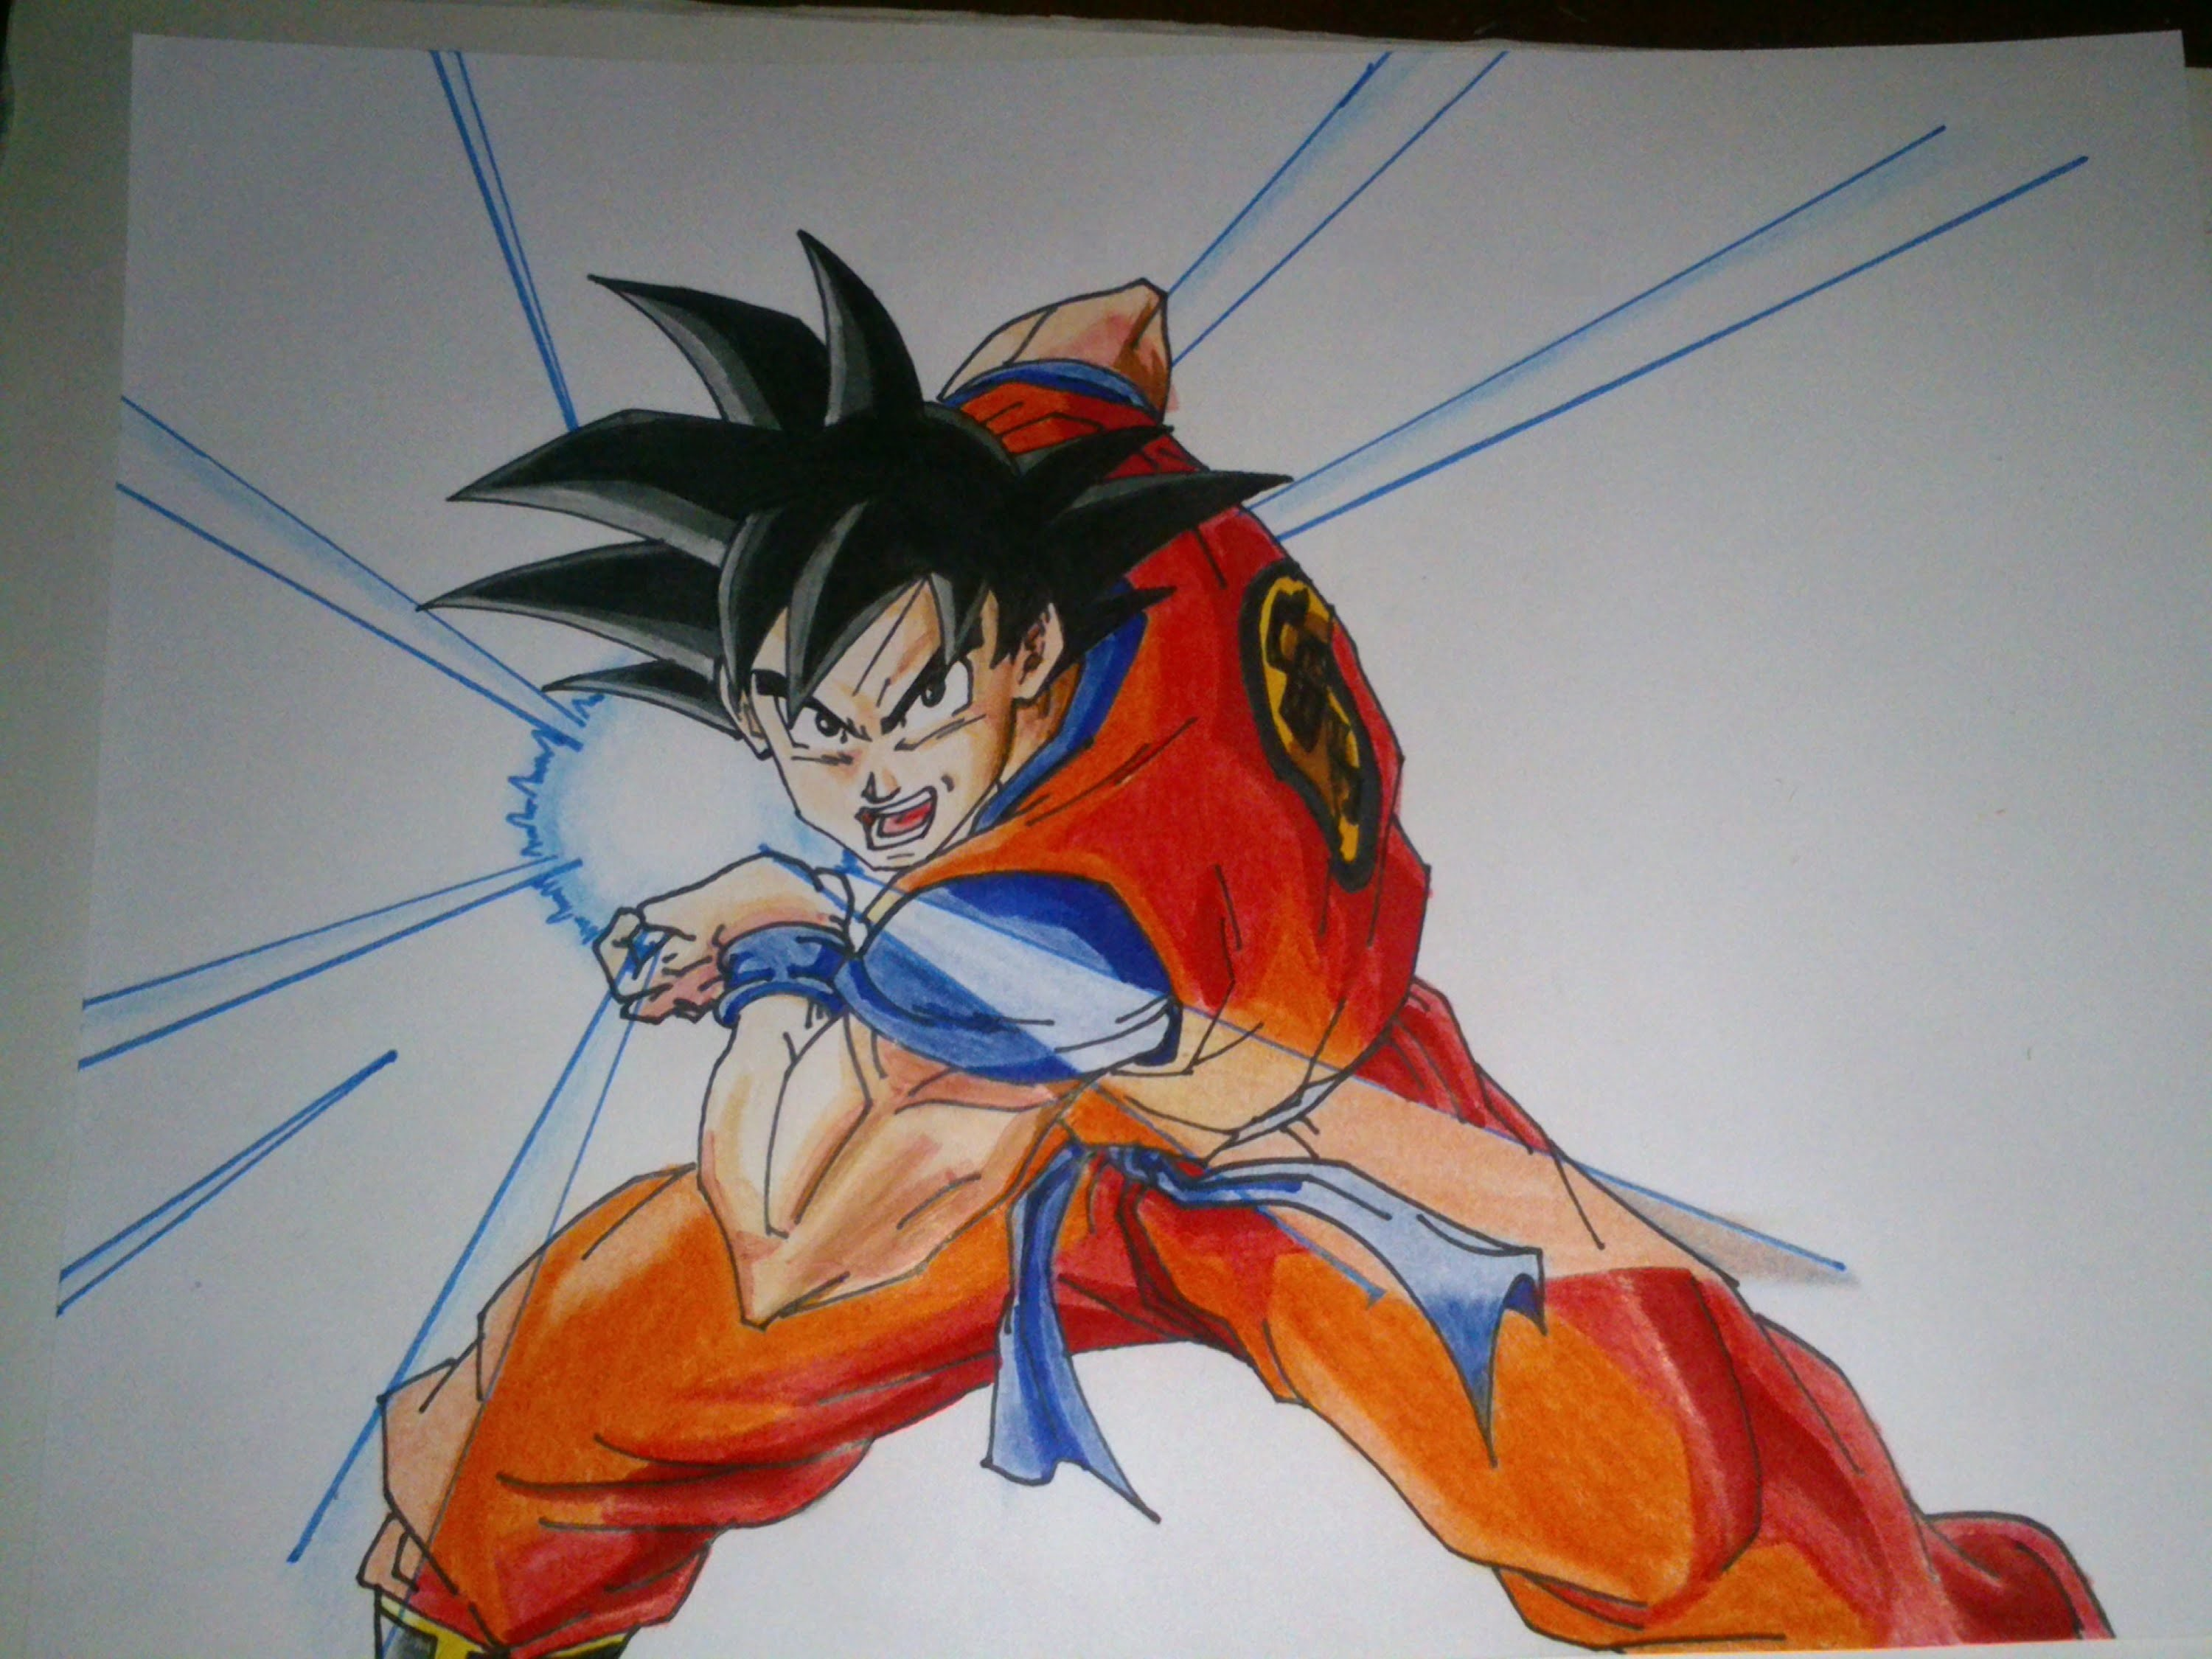 Dibujando a GOKU kame hame ha, drawing goku kame hame ha, how to draw goku kame hame ha